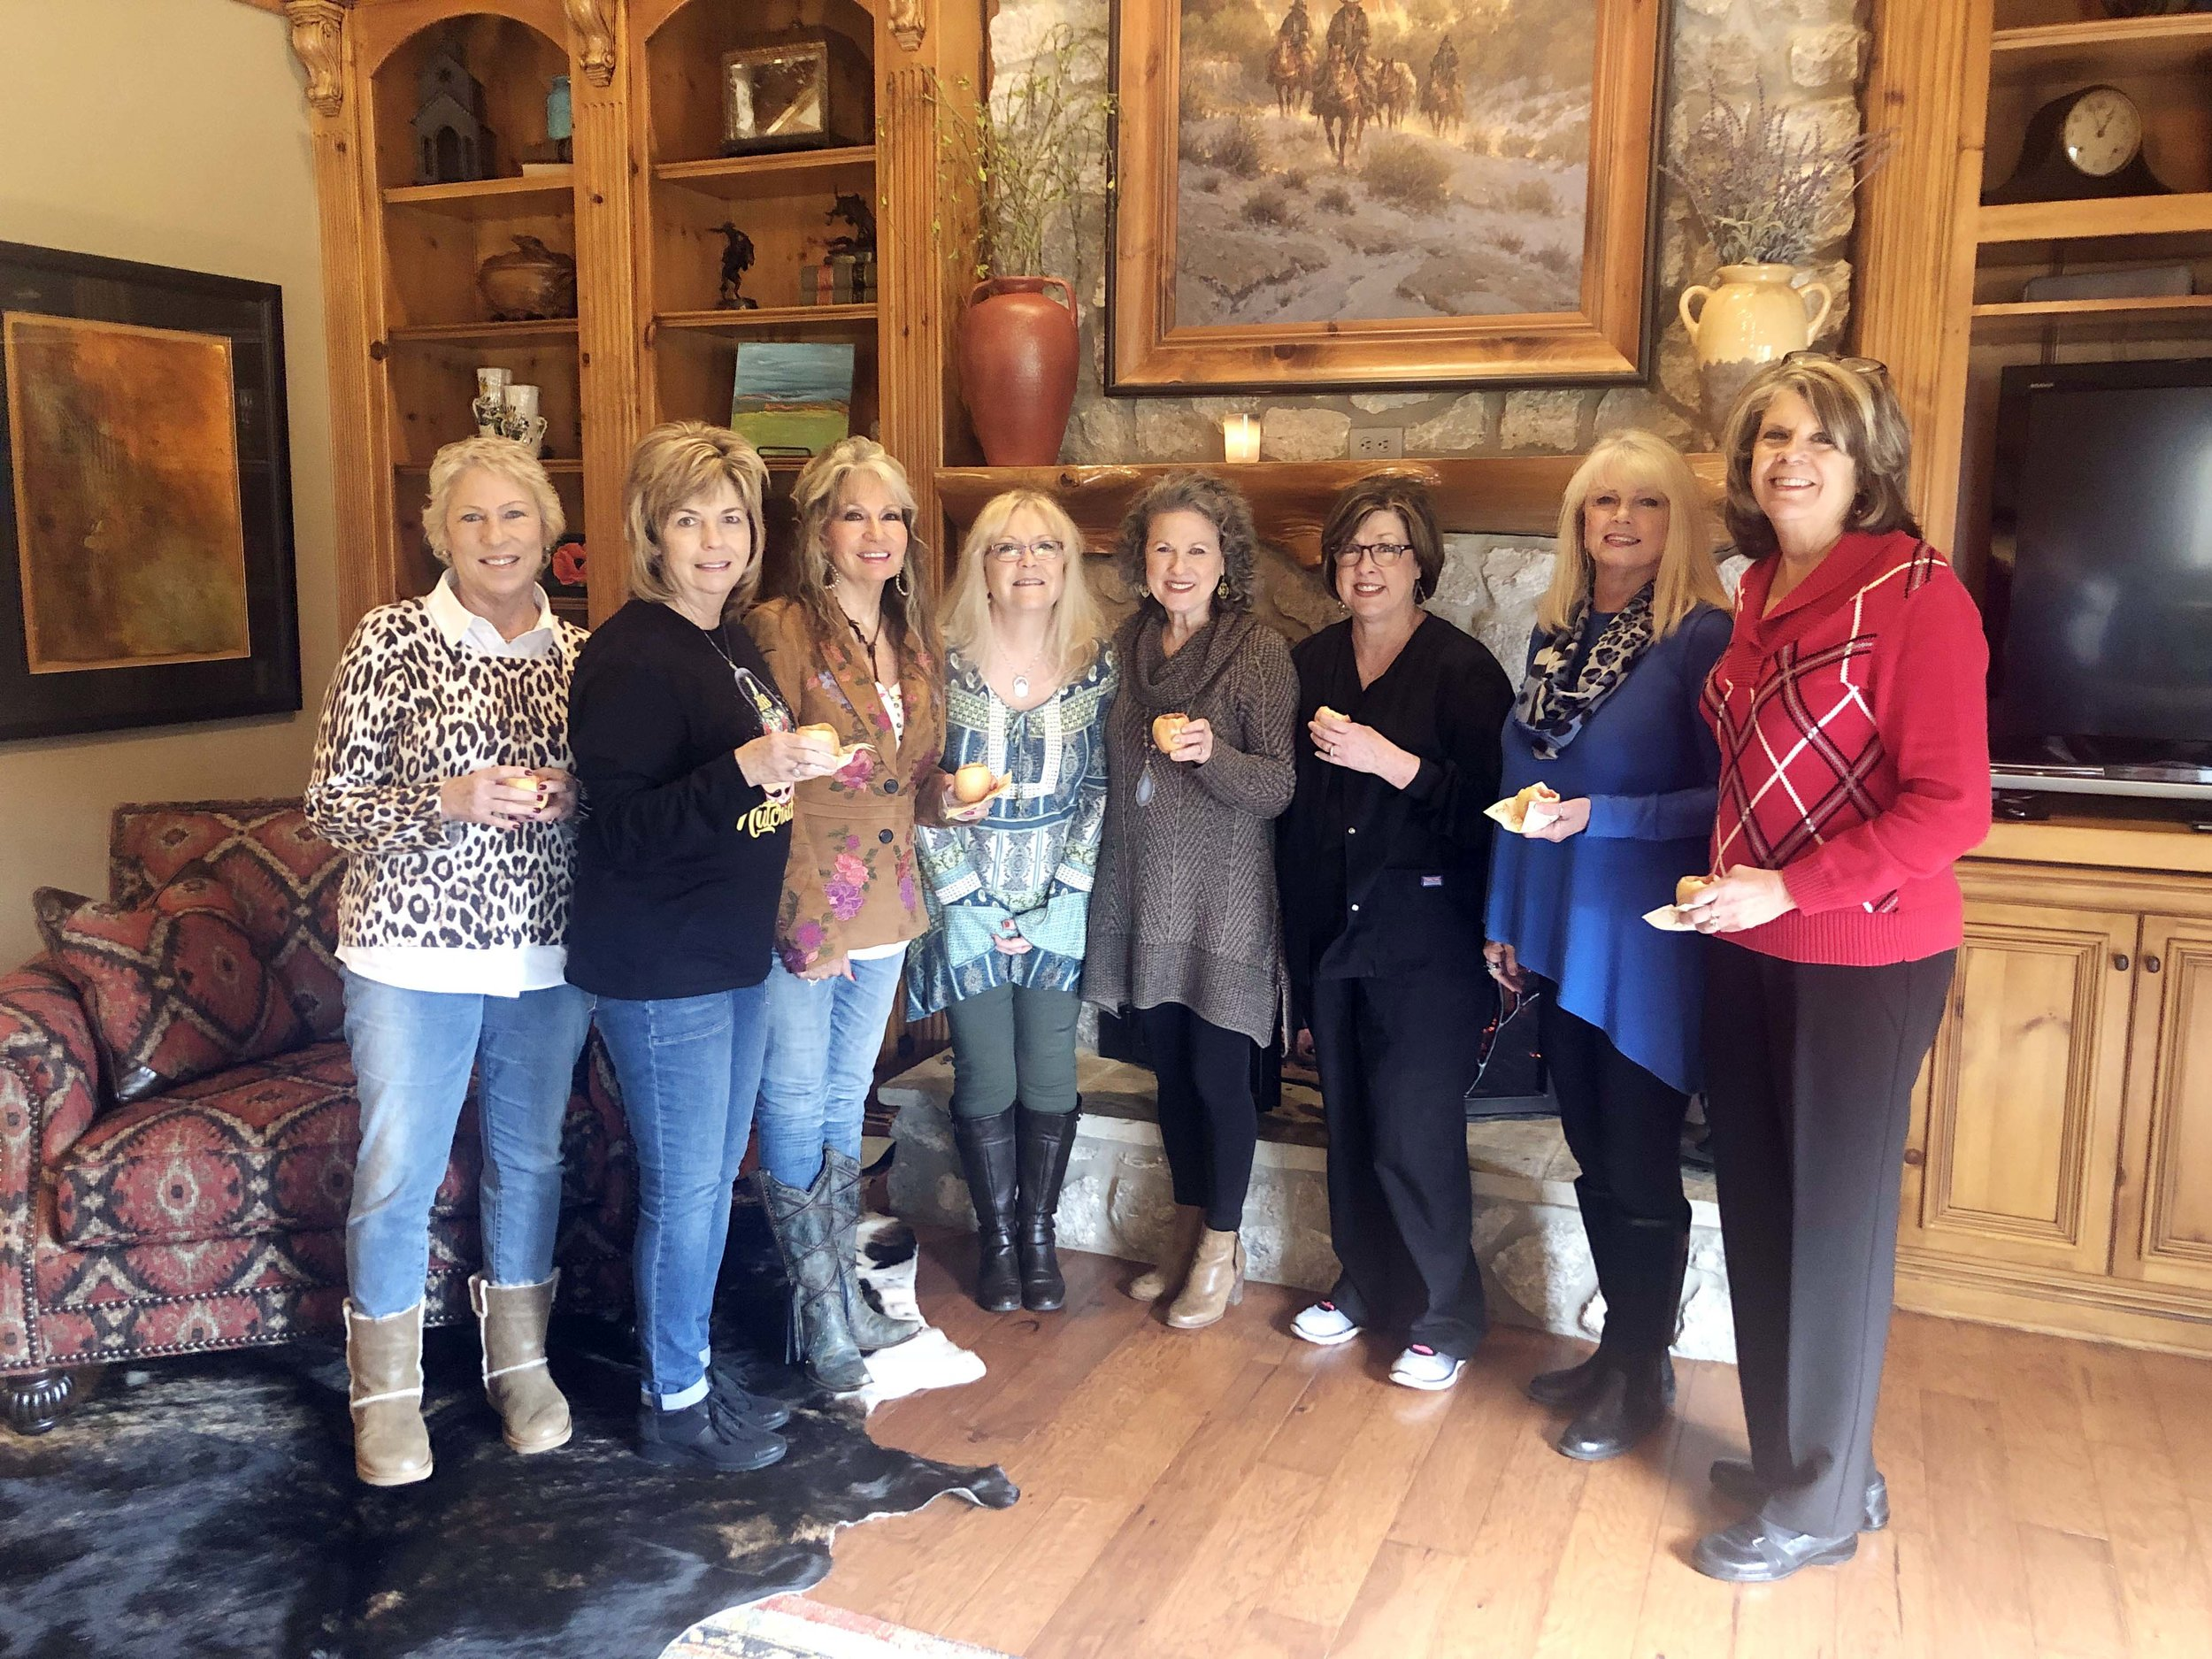 This past November, Jan (right) and her friends, Nanette Pope, Debbie Stroupe, Pam Hicks, Sylvia Jacobs, Judy Jones, Sherry Richardson, and Sharon Shipp, gathered together to celebrate Judy's birthday.